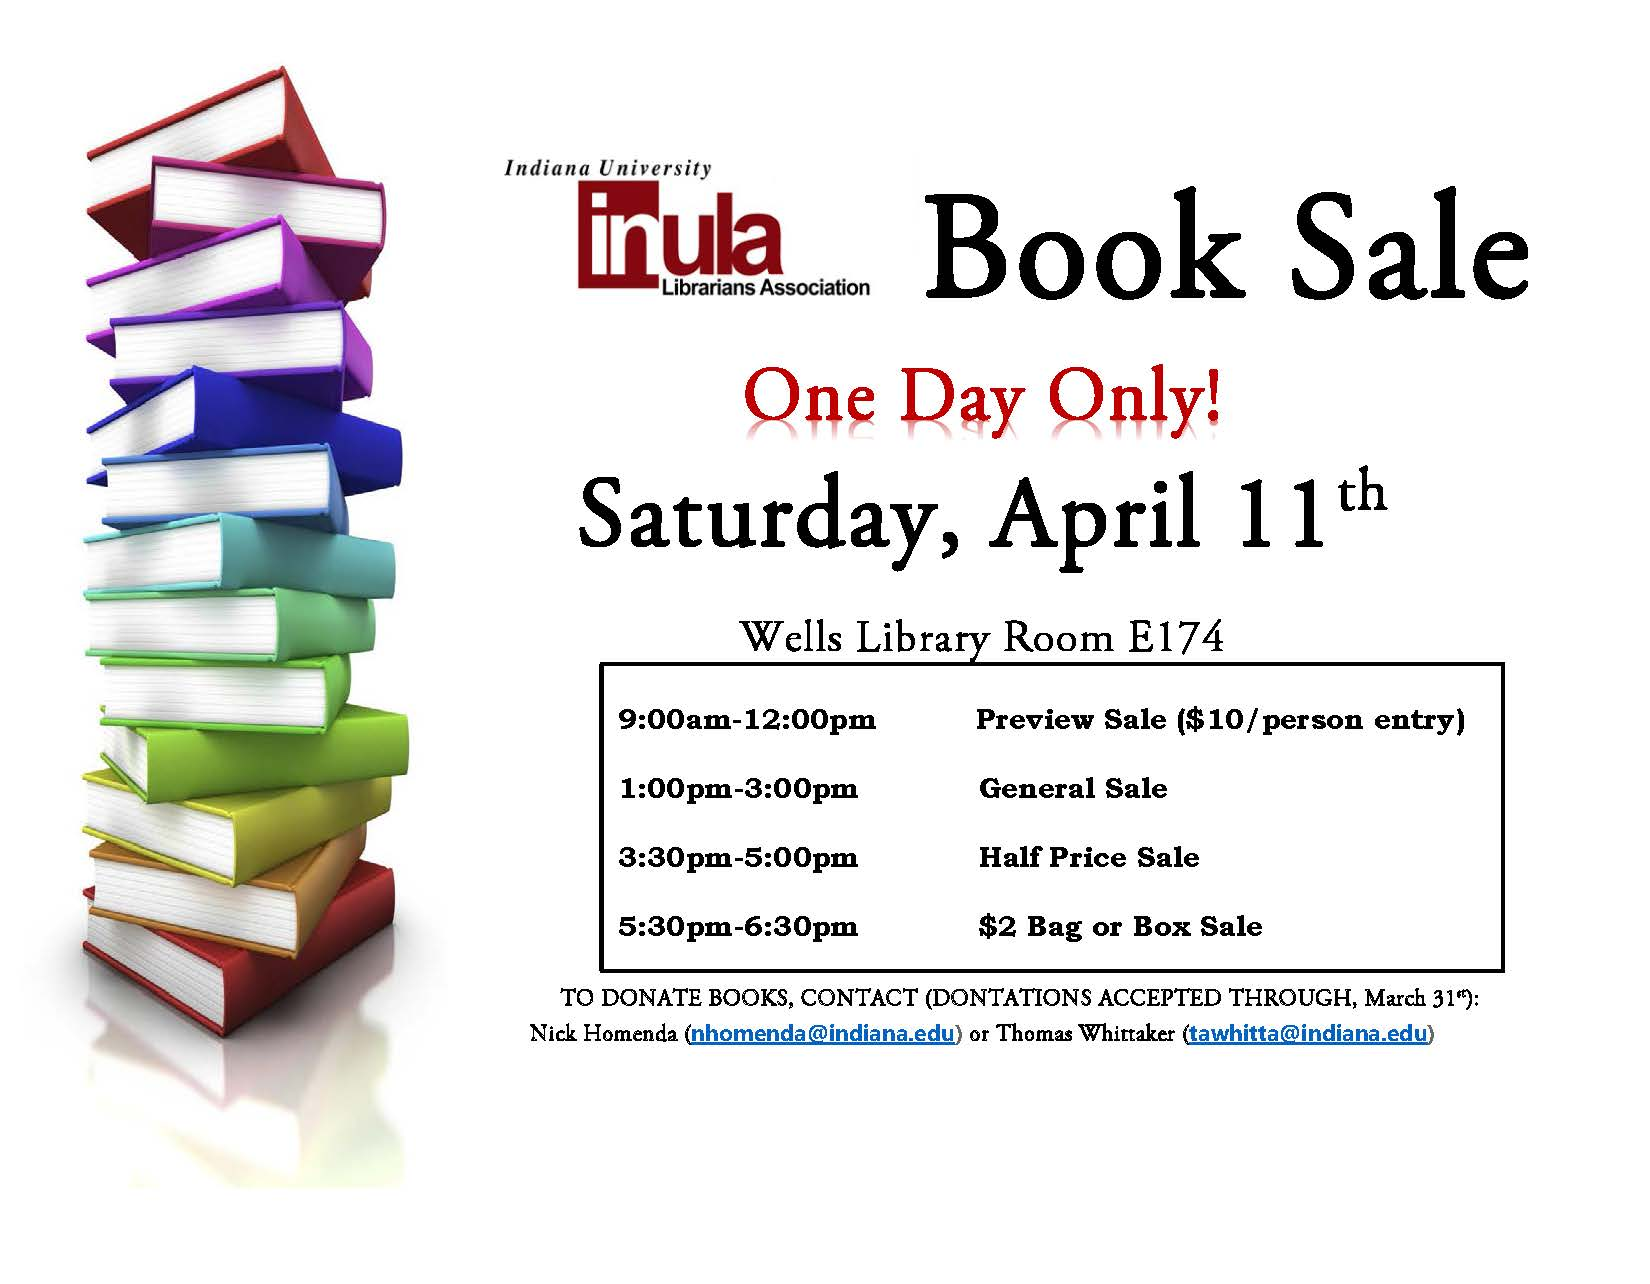 InULA Book Sale Poster 2015